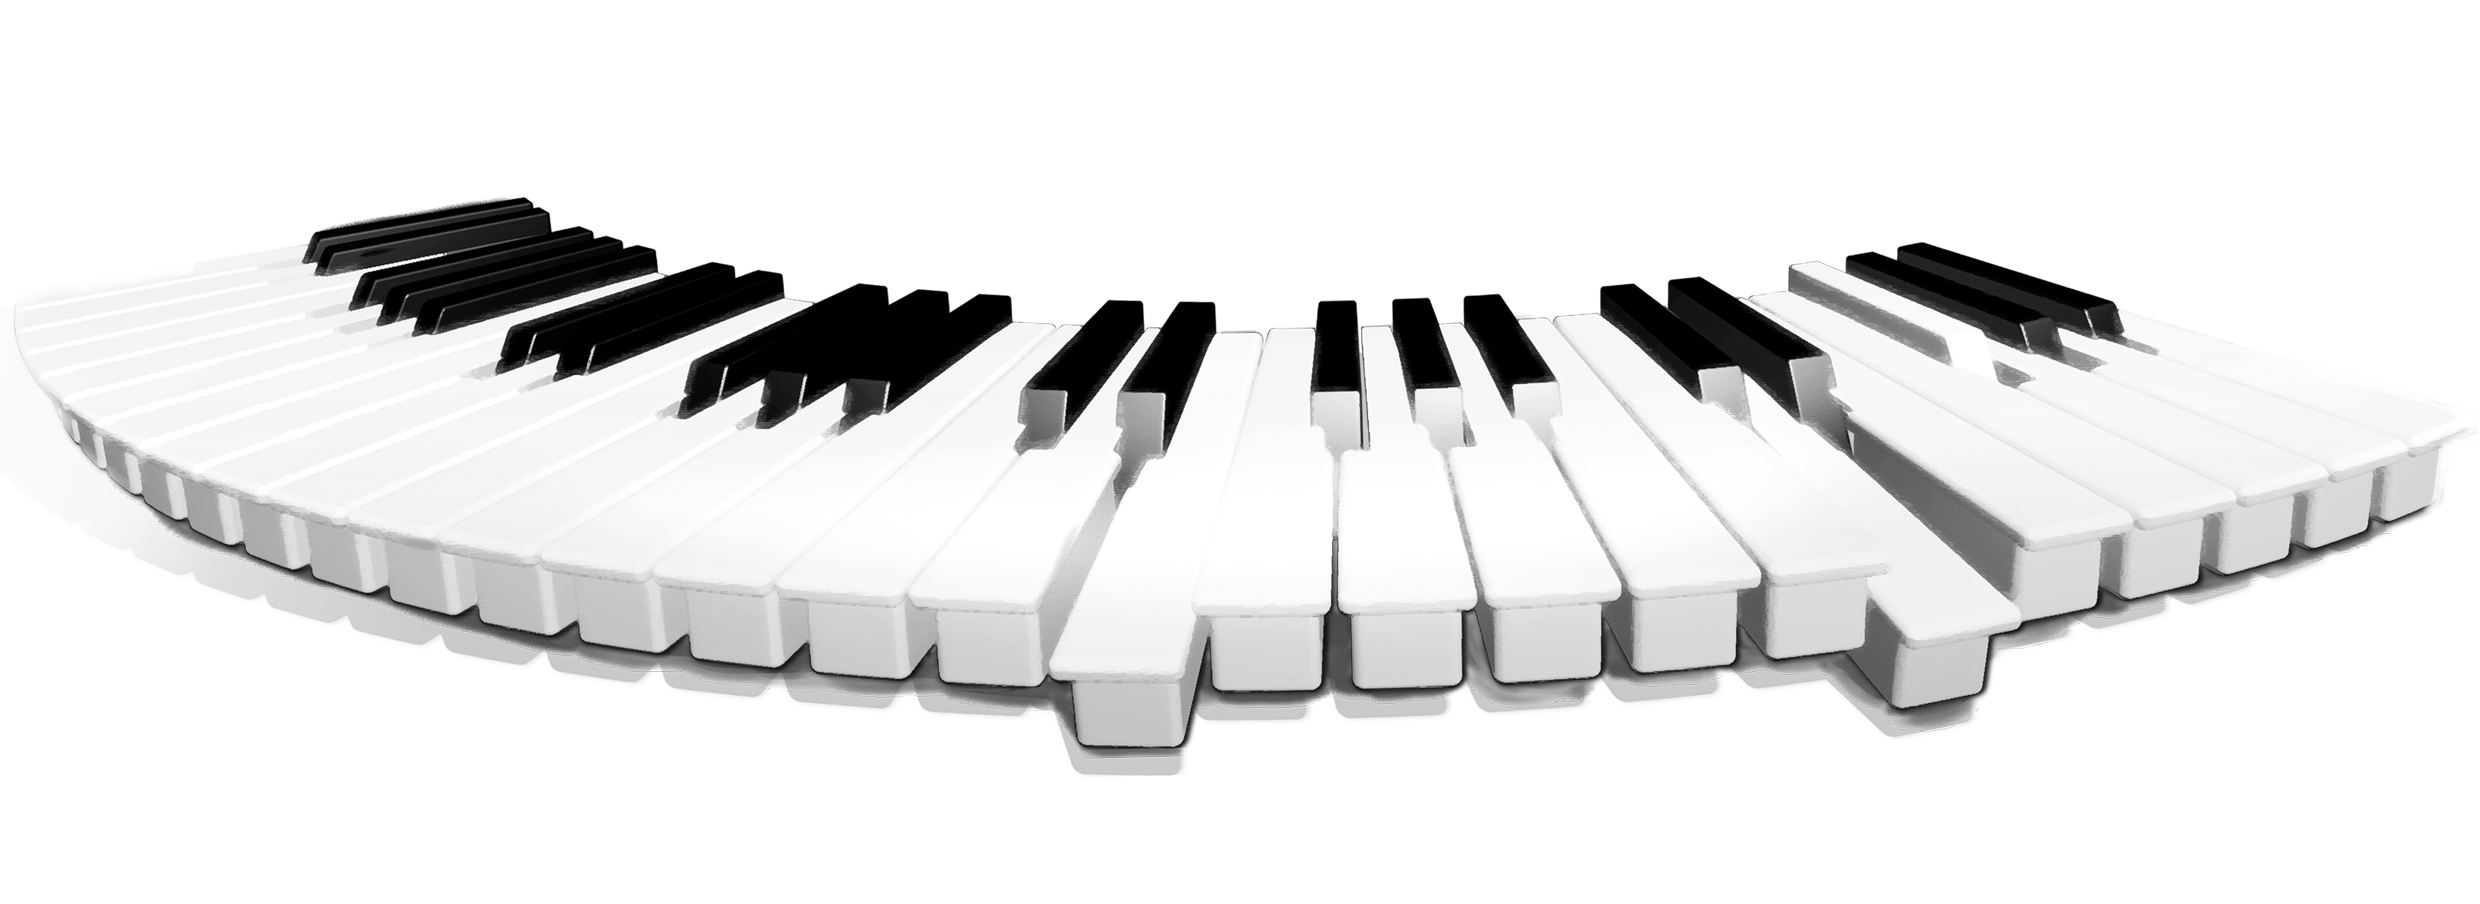 Piano keyboard png. Music transprent free download